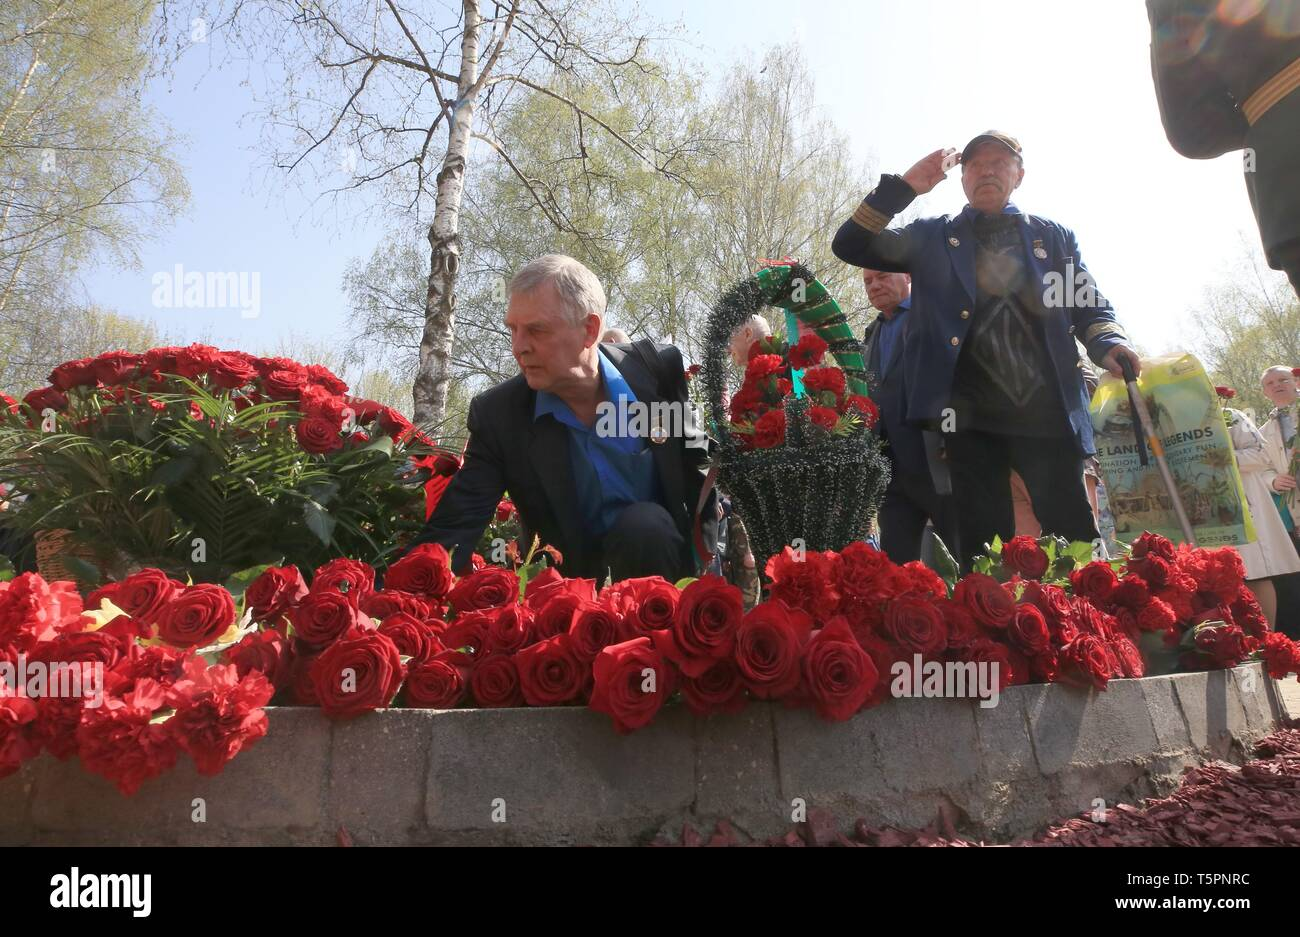 Minsk, Belarus. 26th Apr, 2019. People lay flowers to commemorate the victims of the Chernobyl disaster in Minsk, Belarus, April 26, 2019. The Chernobyl nuclear power plant, some 110 km north of the Ukrainian capital Kiev, witnessed one of the worst nuclear accidents in human history on April 26, 1986, when a series of explosions ripped through the No.4 reactor, spreading radiation across Ukraine, Belarus, Russia and other European countries. Credit: Efim Mazurevich/Xinhua/Alamy Live News - Stock Image